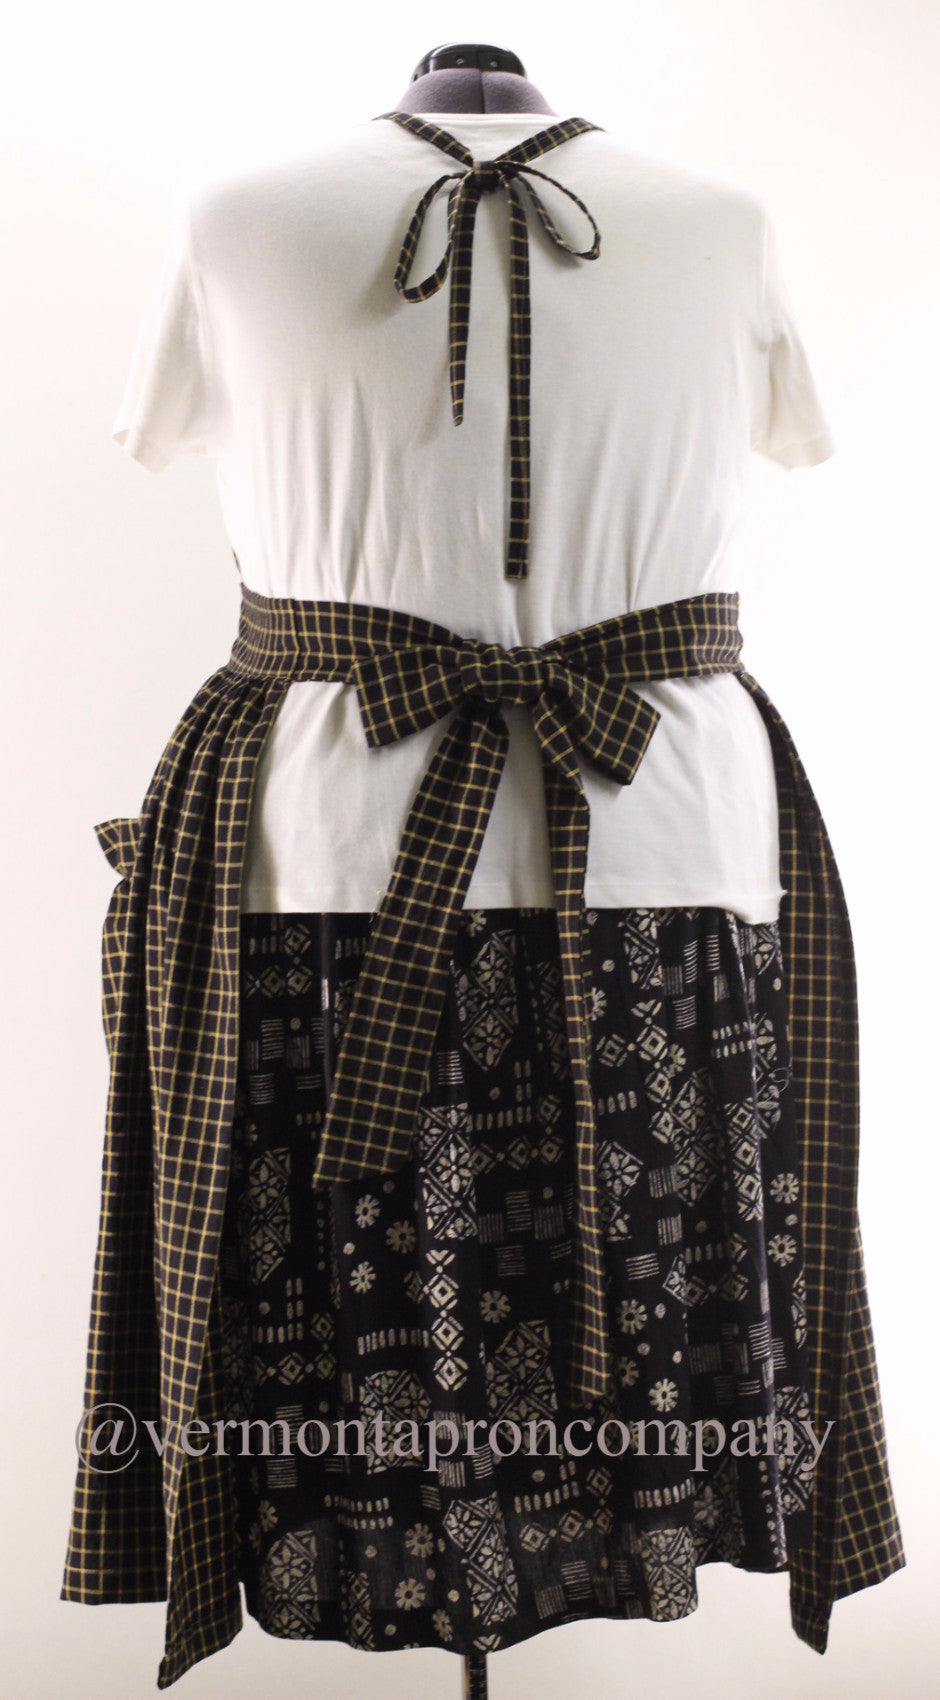 XS-5X  Gathered Bib Apron in Black 100% Cotton Homespun, plus size, back view